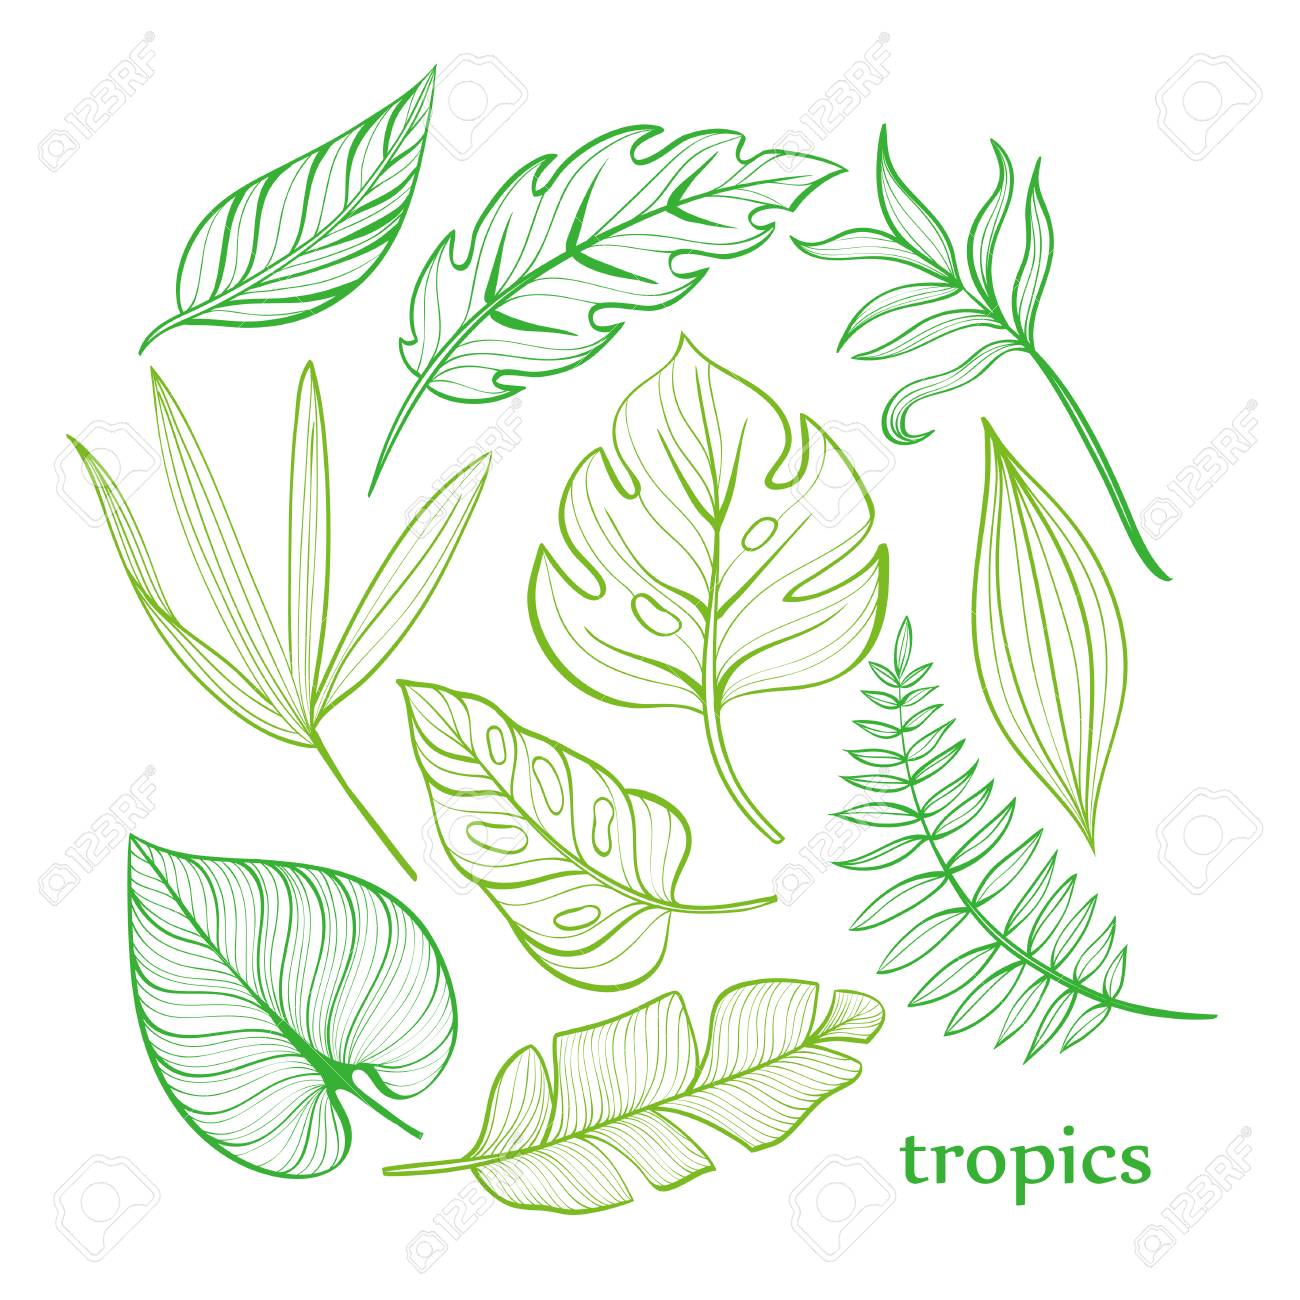 Set Of Tropical Leaves Line Drawing Hand Drawn Illustration Royalty Free Cliparts Vectors And Stock Illustration Image 126065464 Most relevant best selling latest uploads. set of tropical leaves line drawing hand drawn illustration